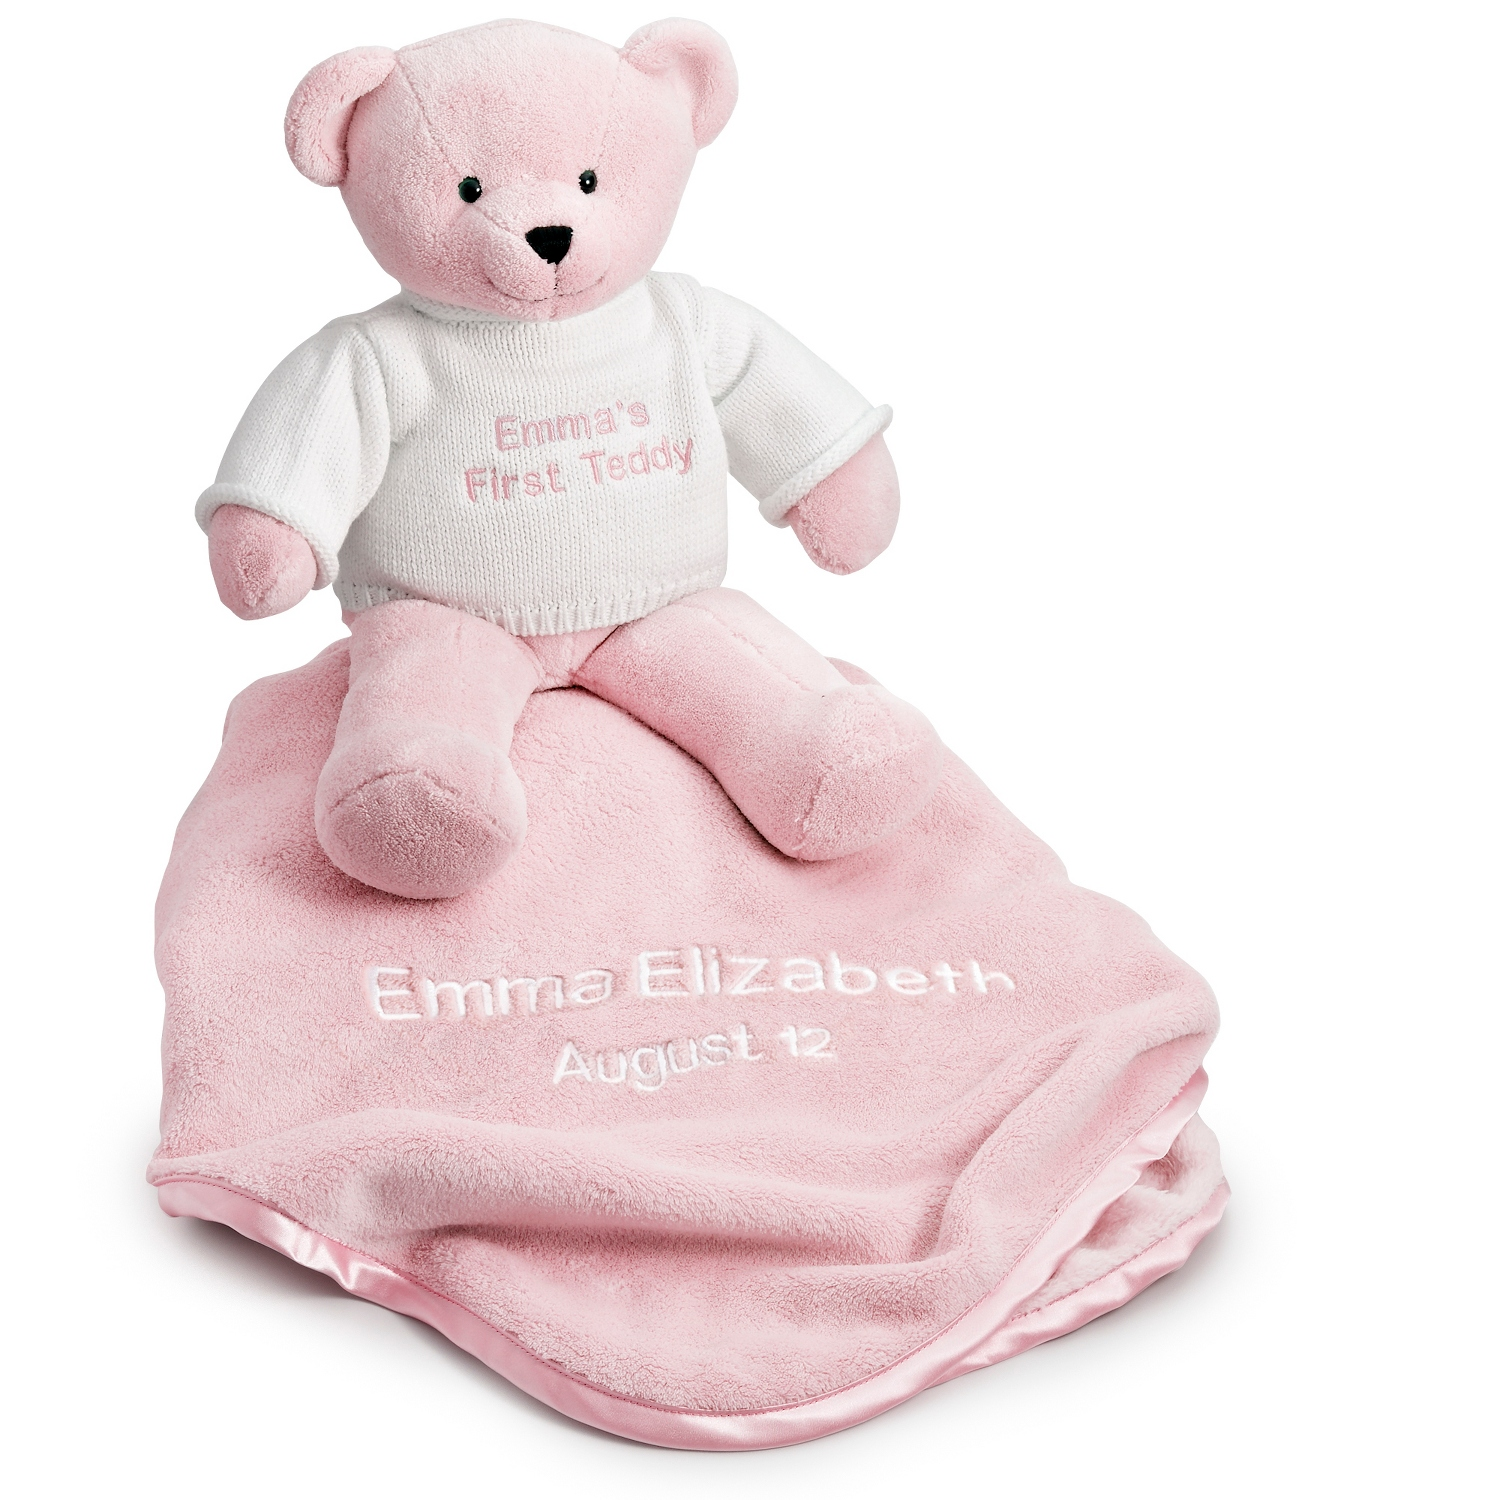 775aeaef1c50 Pink Teddy Bear with Blanket